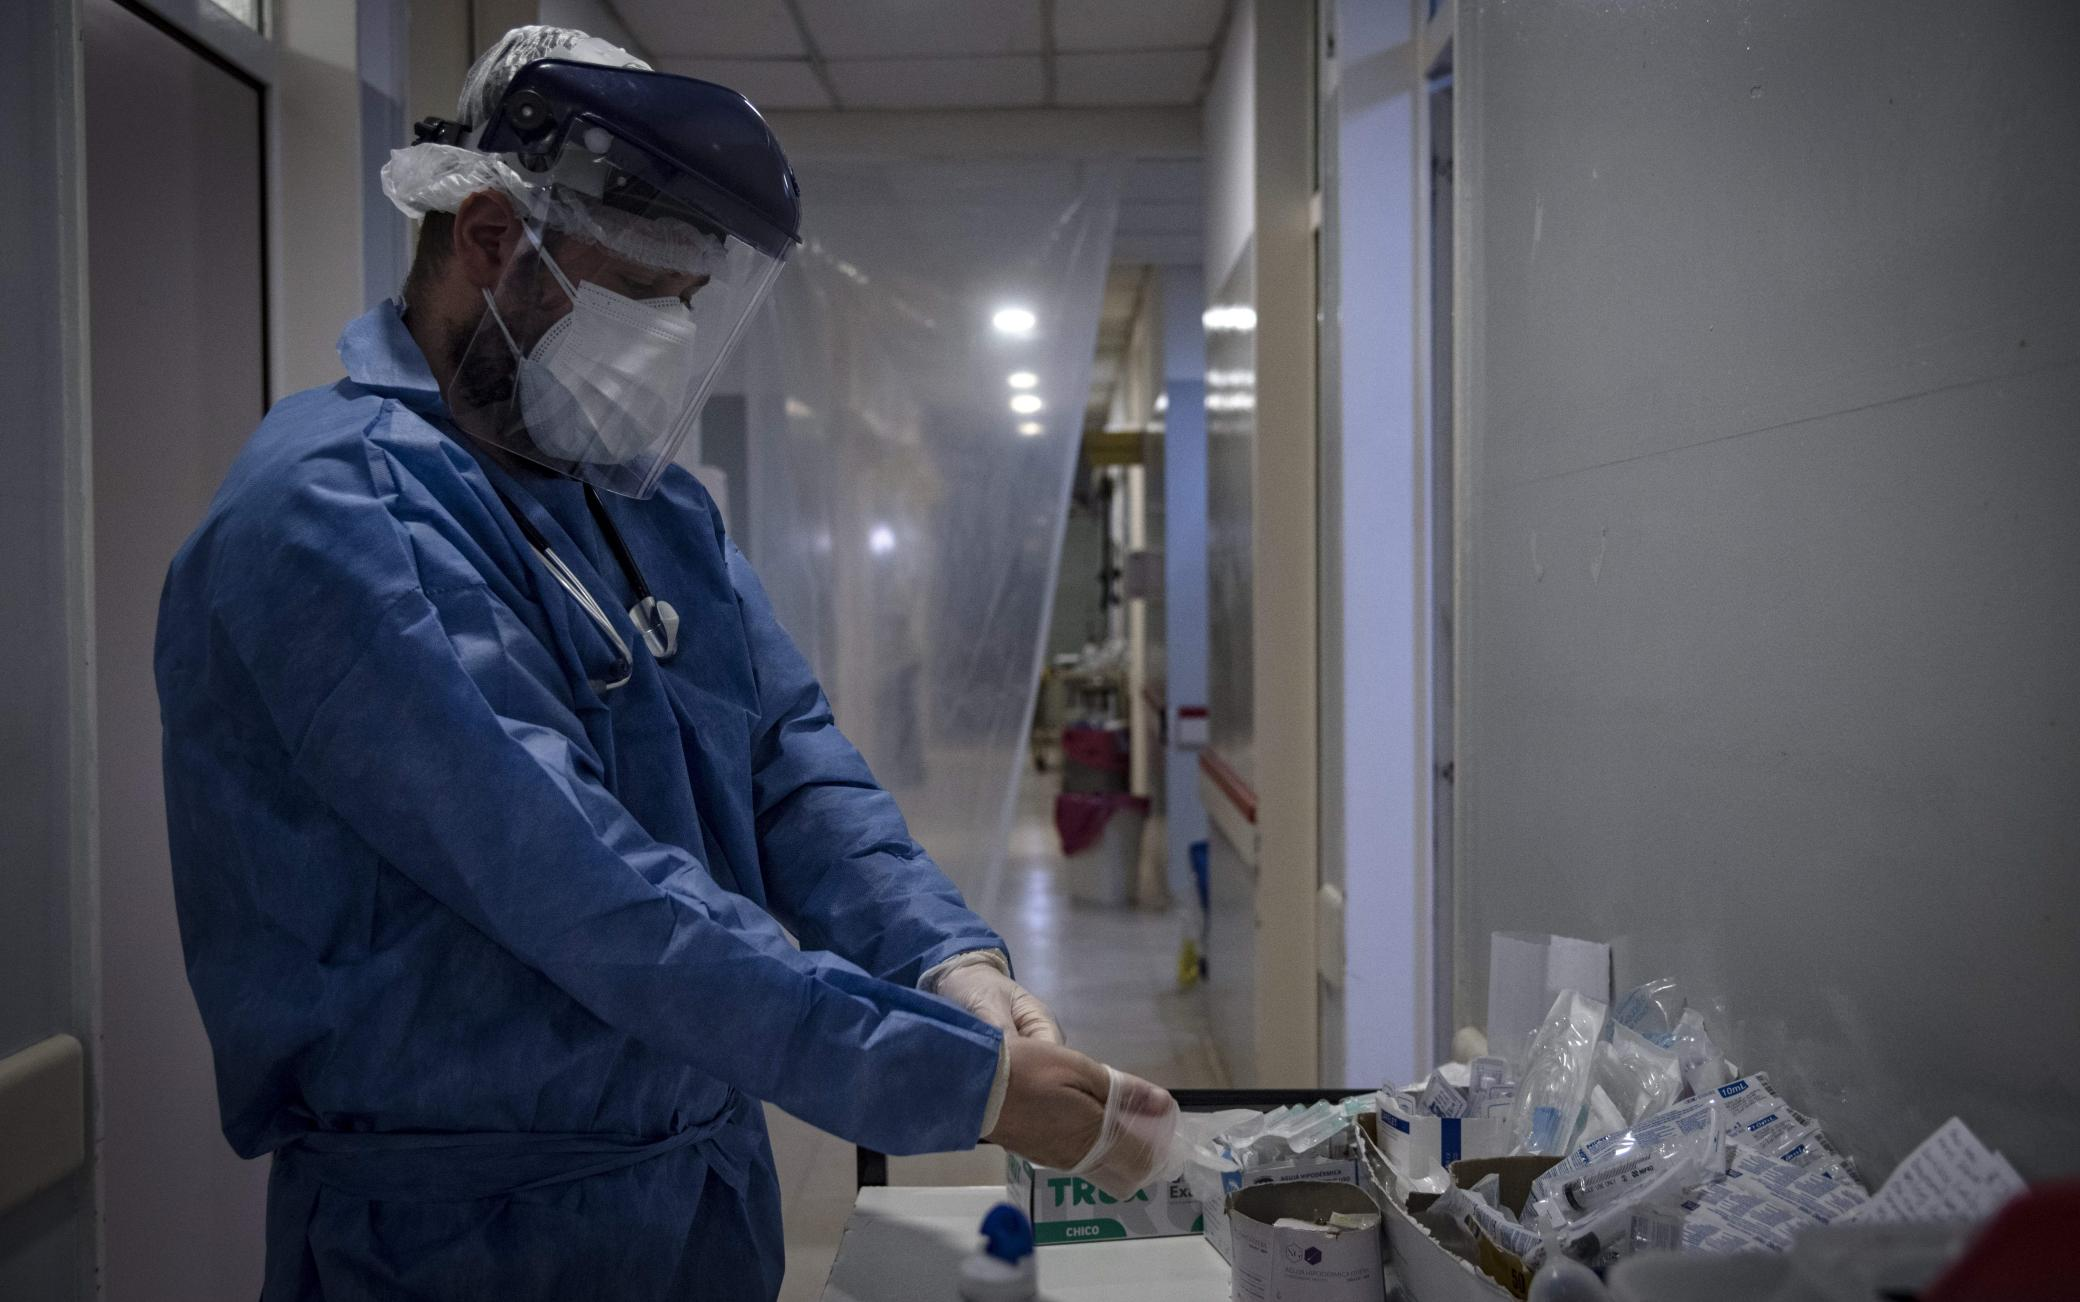 Dr Mario Grossmann wearing protective suit puts on gloves before treating patients with COVID-19, during his 24hs shift, at the emergency area of the Doctor Alberto Antranik Eurnekian Public Hospital in Ezeiza, in the outskirts of Buenos Aires on August 29, 2020, amid the new coronavirus, COVID-19, pandemic. - Dr Grossmann, a professor, head of practical work of semiology and internal medicine at Buenos Aires University (UBA) and chair head of semiology and internal medicine at Universidad Abierta Interamericana (UAI) teaches from the hospital through video calls to students of 4th and 5th year. (Photo by ARIEL TIMY TORRES / AFP) (Photo by ARIEL TIMY TORRES/AFP via Getty Images)